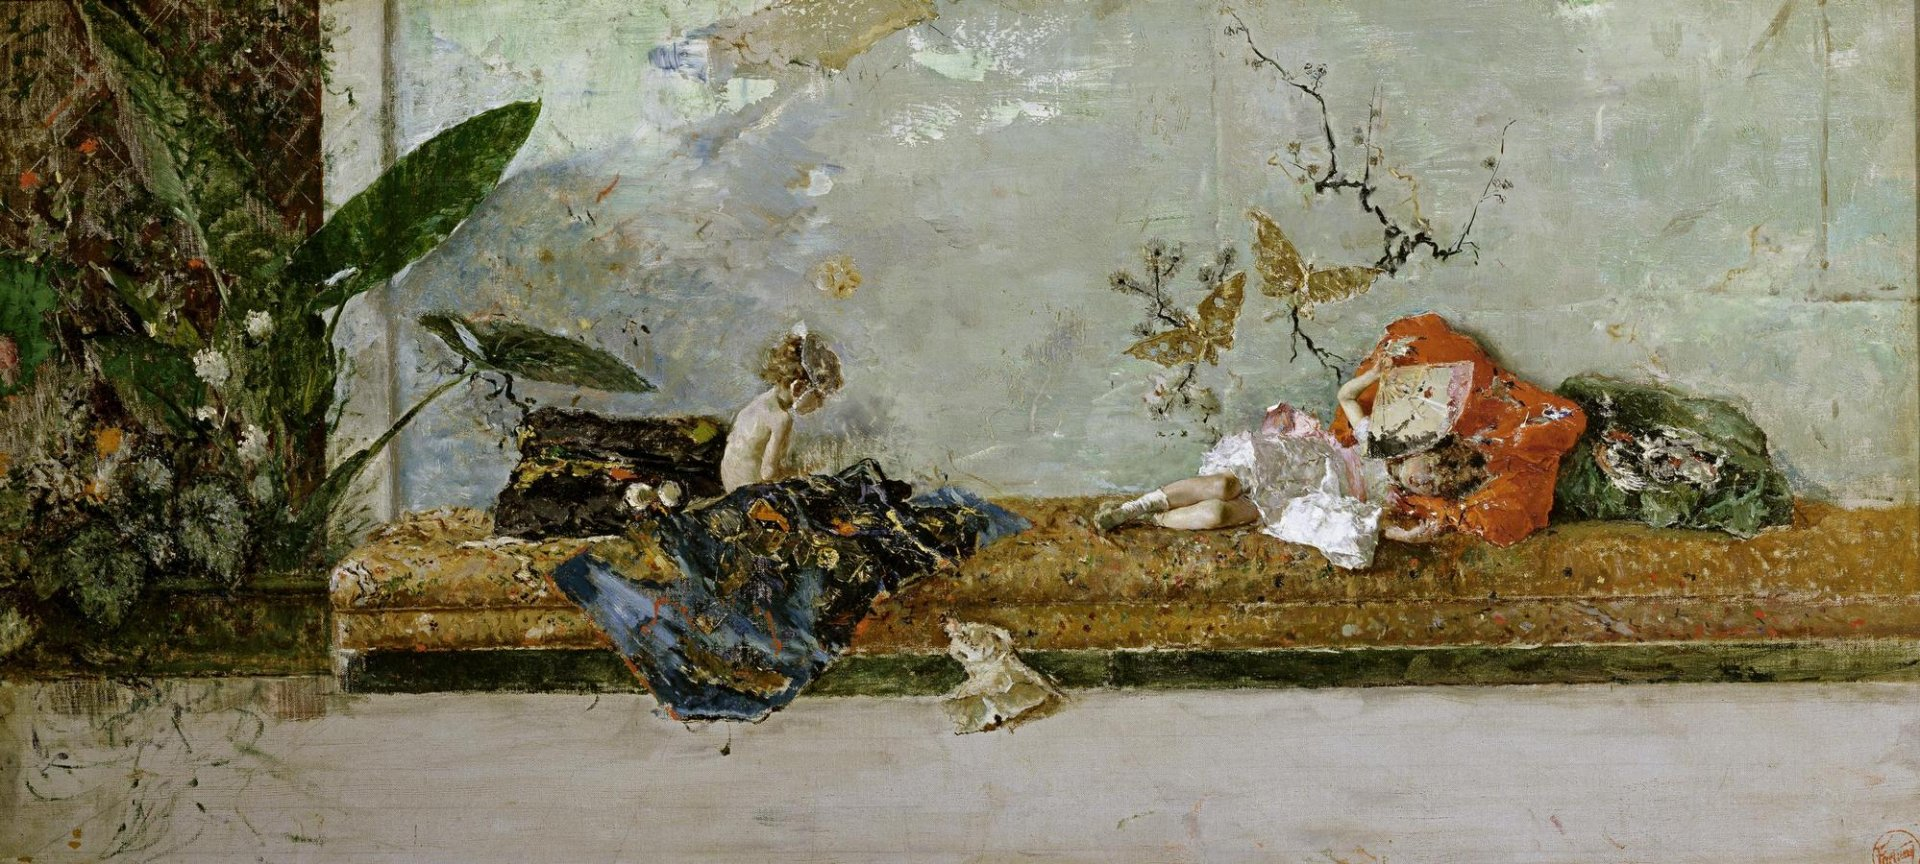 Mariano_Fortuny_The_Artist's_Children_in_the_Japanese_Salon.jpg